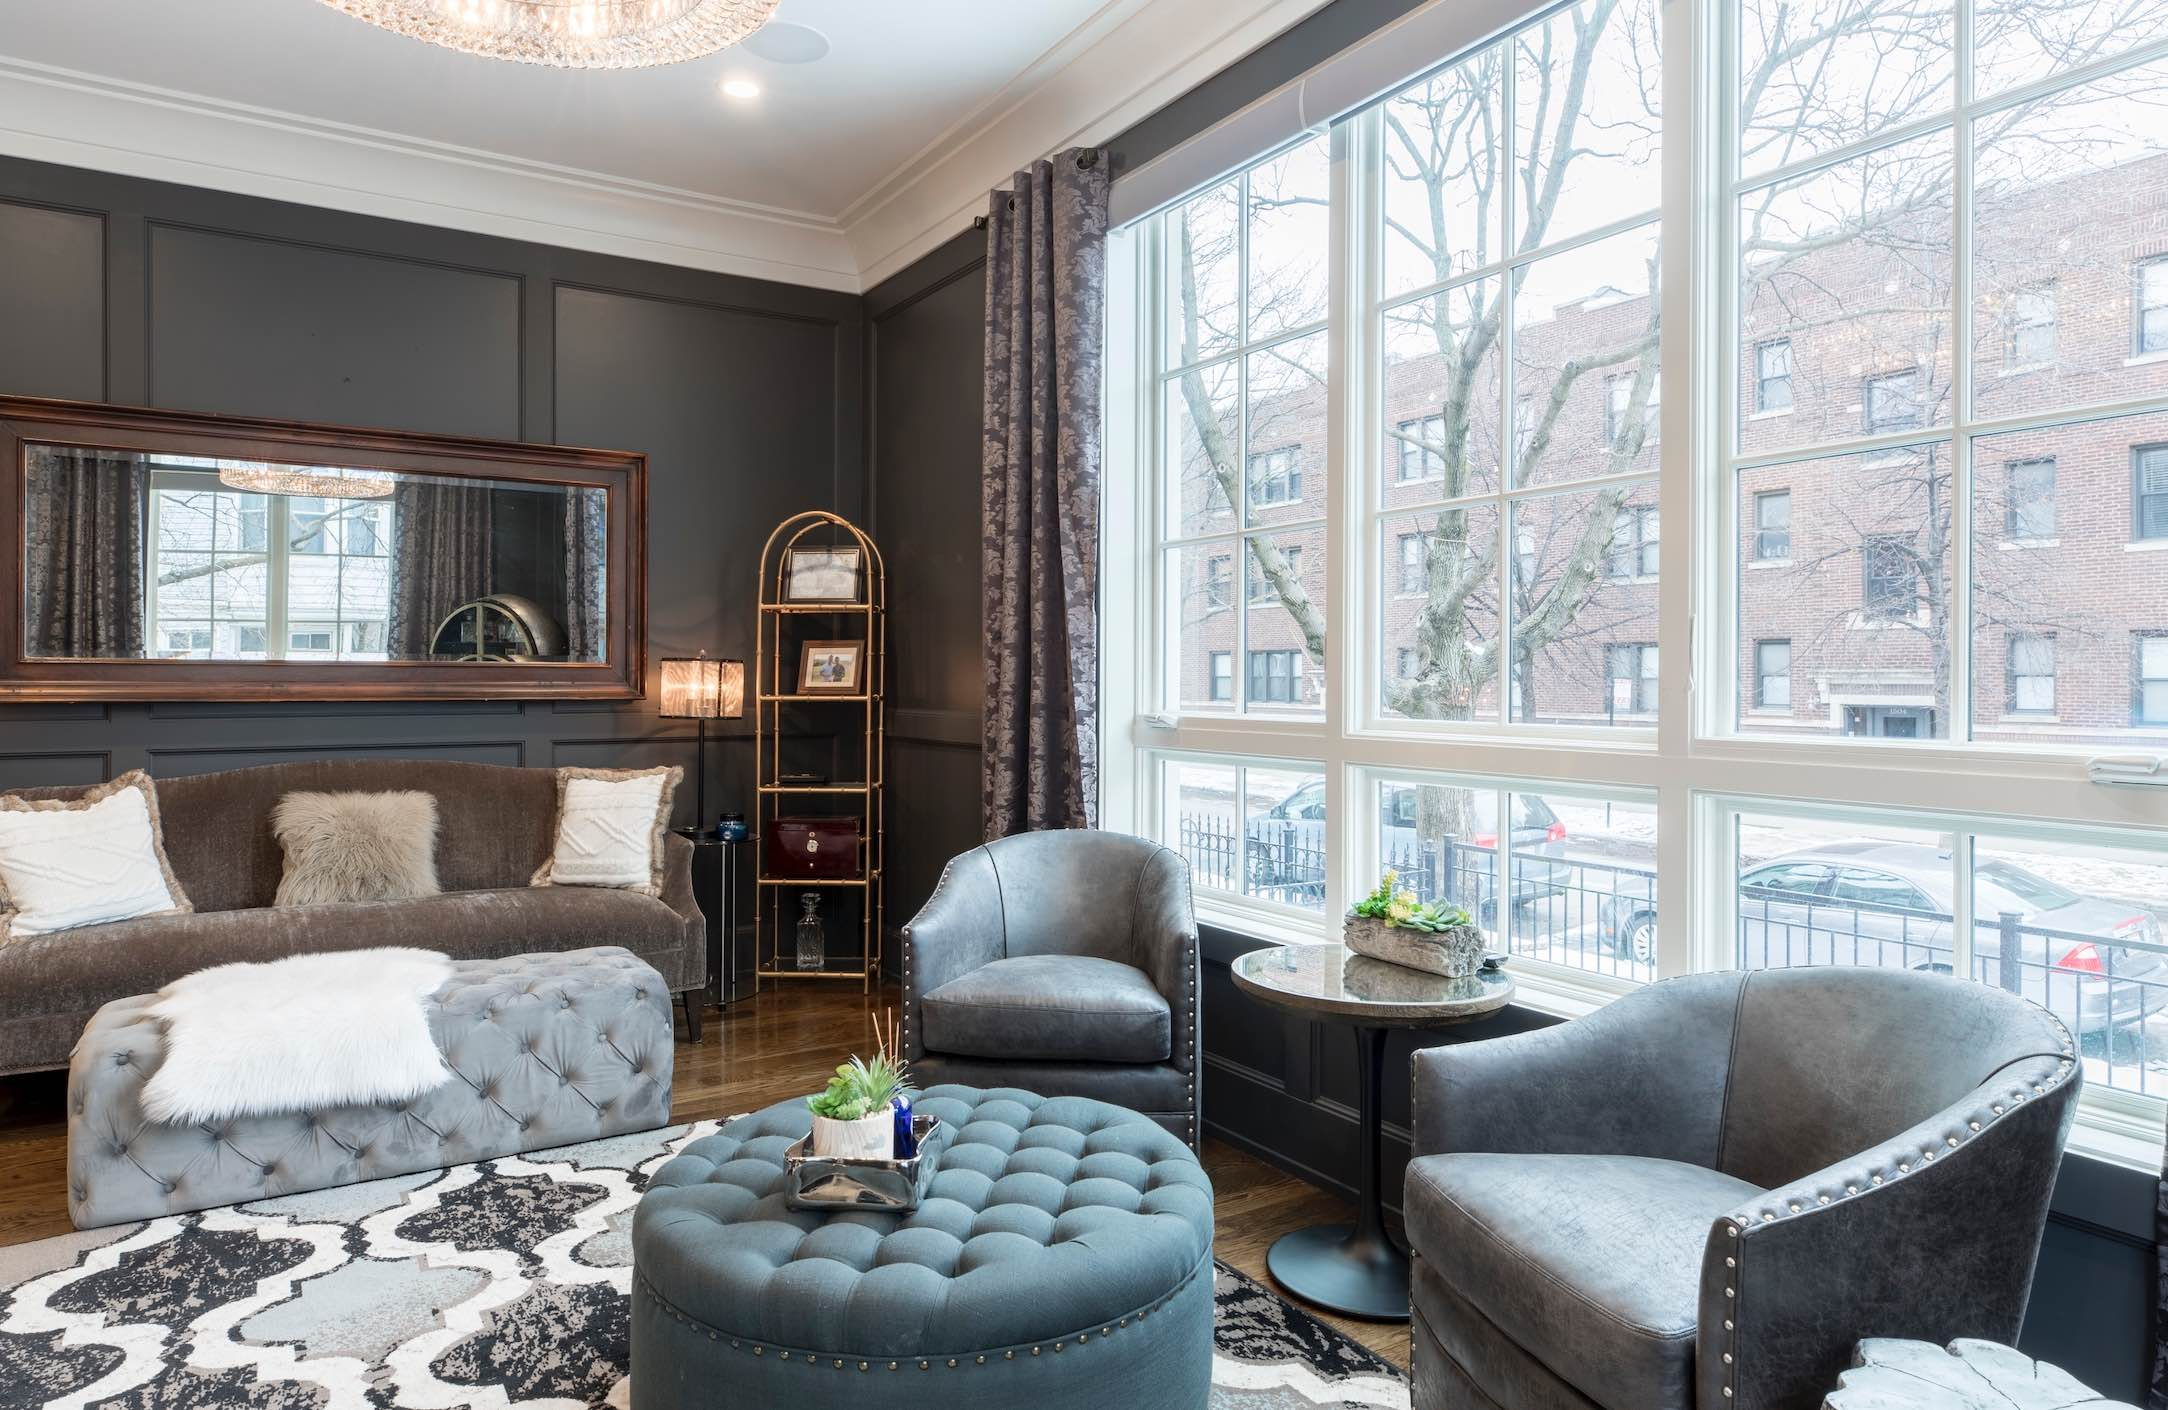 Glare Reducing Window Film Really Improves Comfort in Fall and Winter - Home and Commercial Window Film Services in the Arvada and Denver, Colorado area